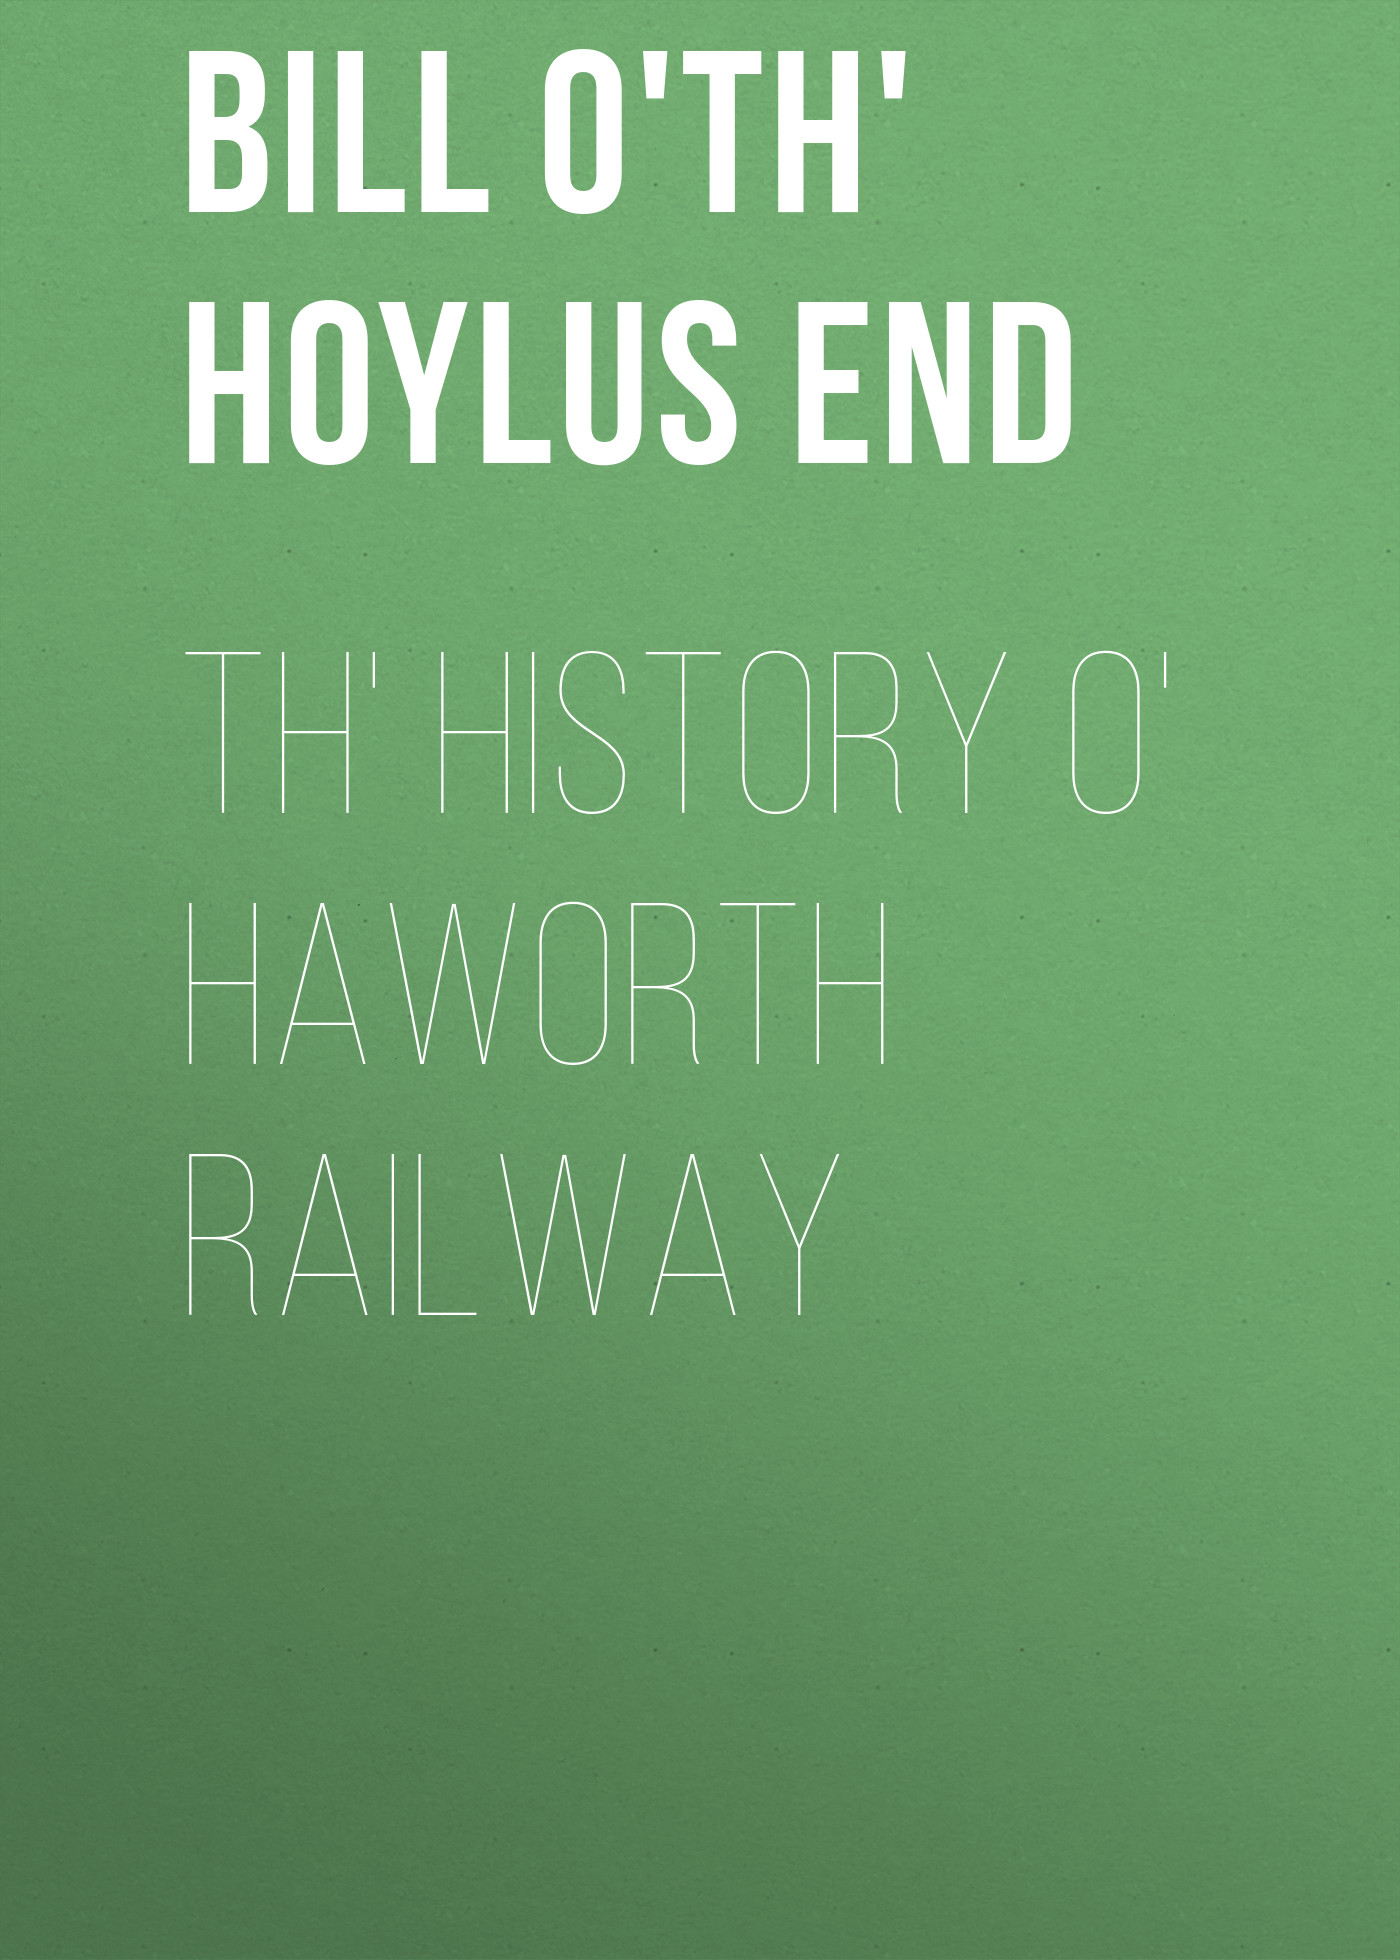 Bill o'th' Hoylus End Th' History o' Haworth Railway bill o th hoylus end random rhymes and rambles